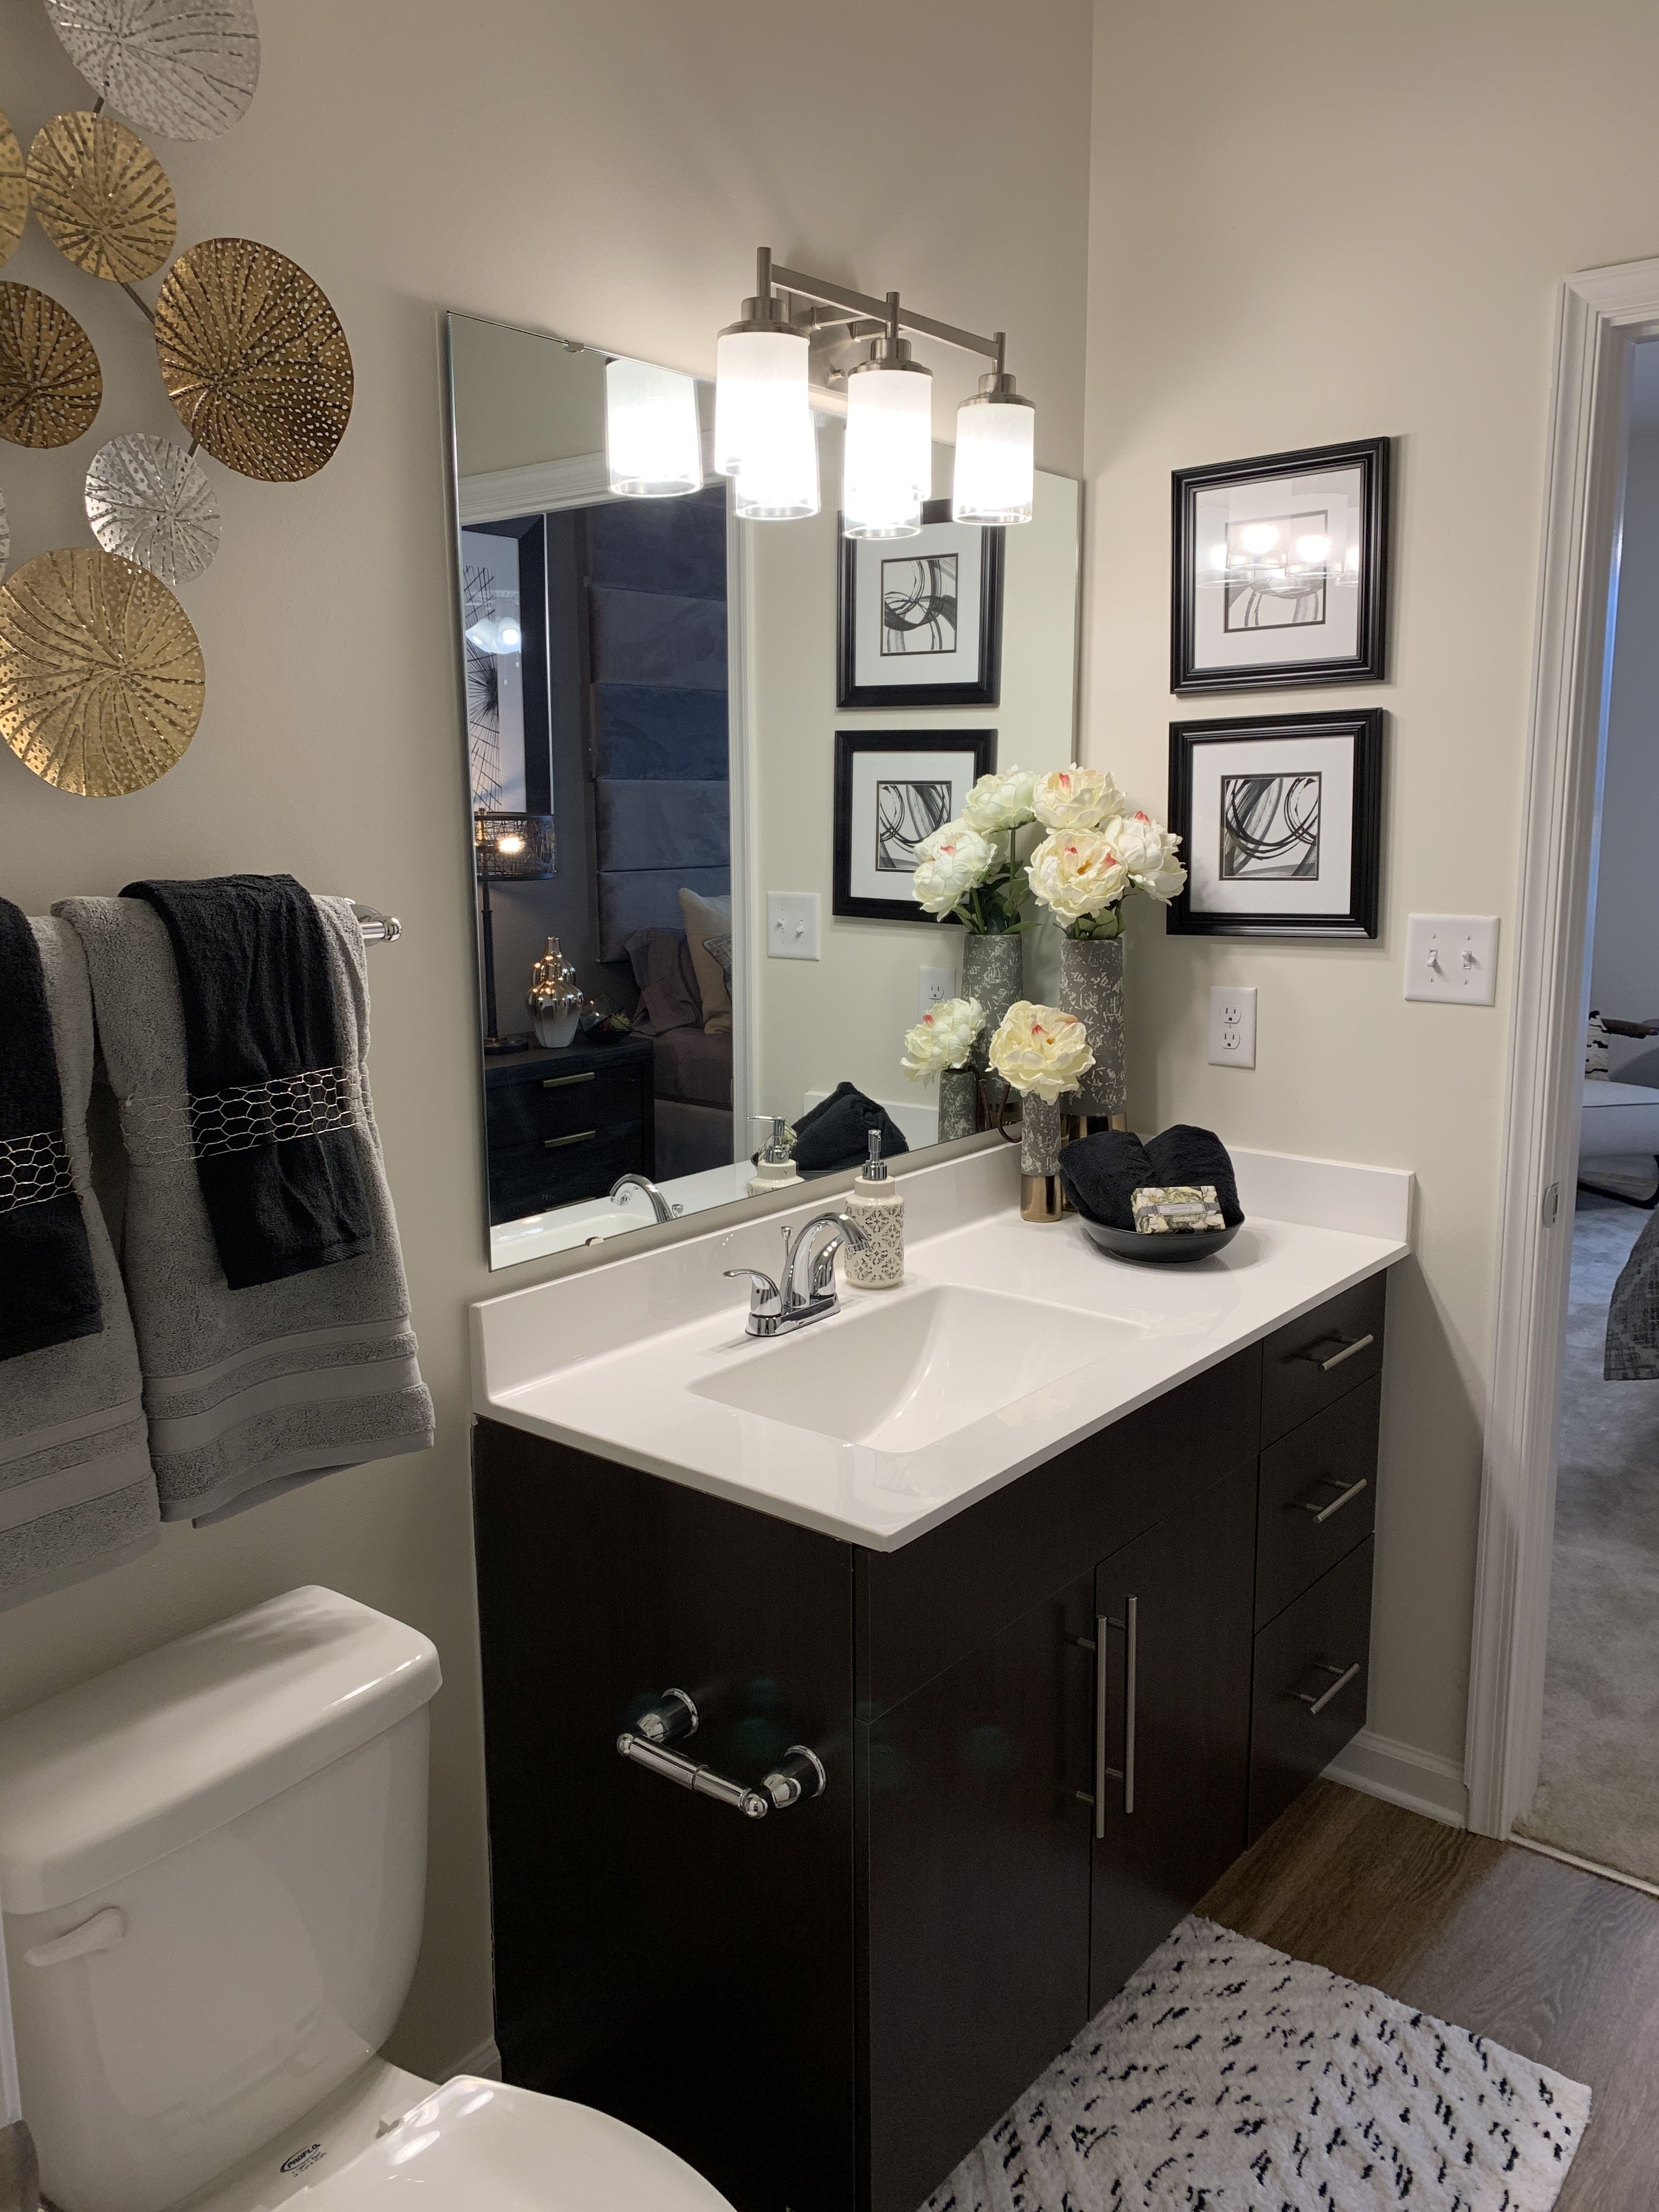 Clairmont At Harbour View Station Suffolk Va Our 1 2 3 Bedroom Apartments Feature Open Floor Plans Large Wal Spa Inspired Bathroom Apartment Garden Tub